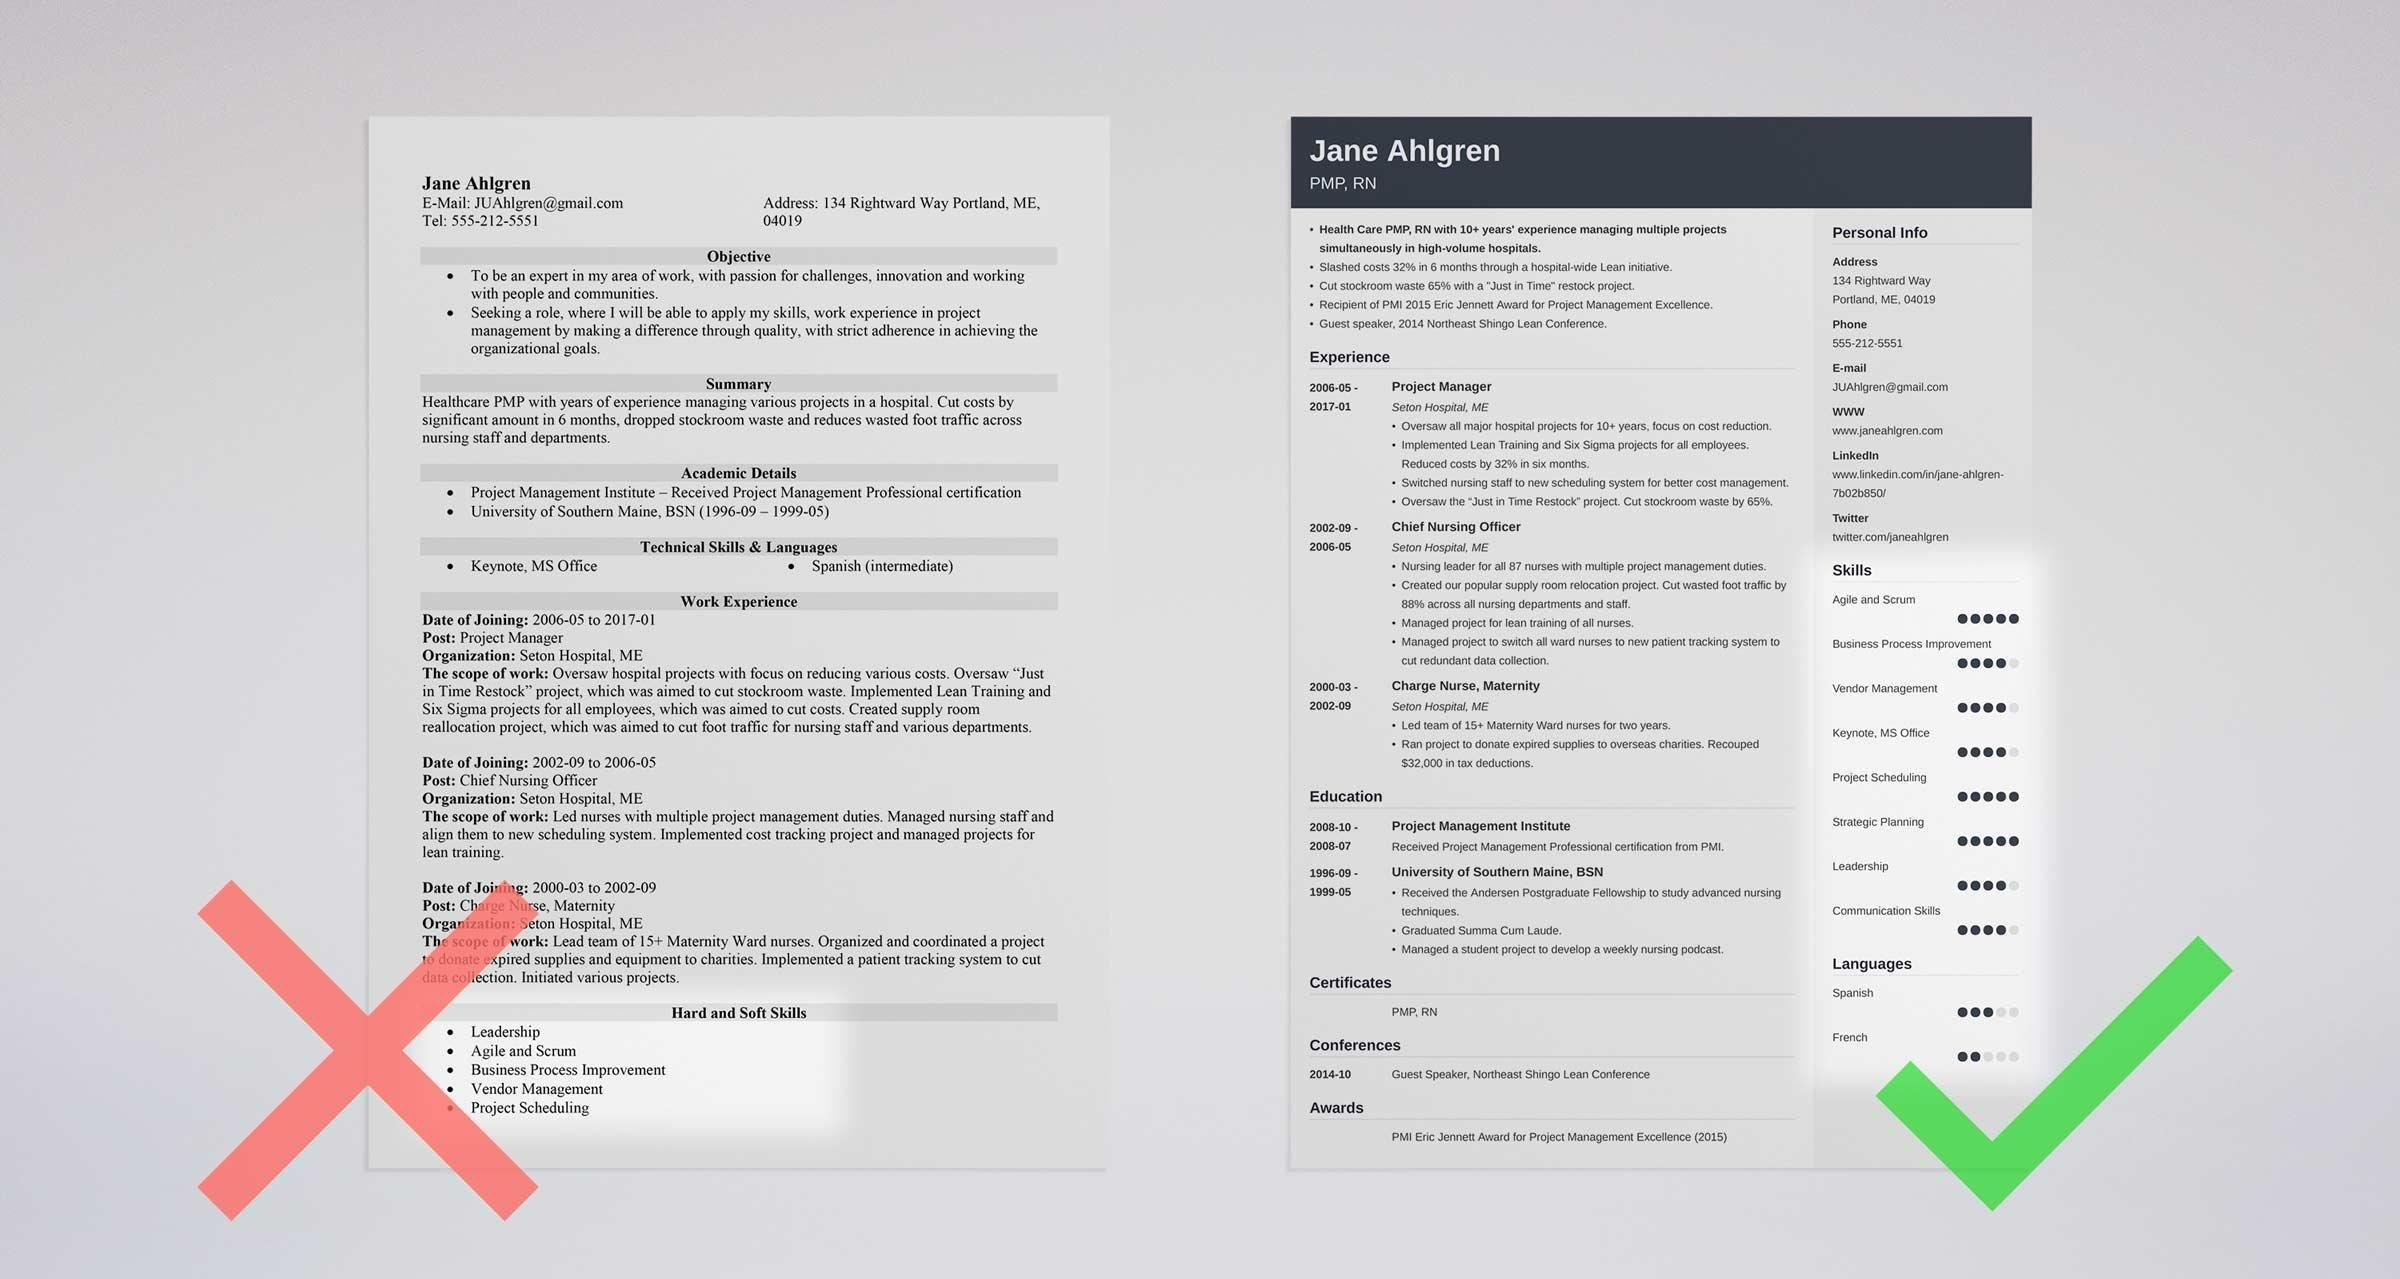 How To Fill Out Skills On A Resume 99 Key Skills For A Resume Best List Of Examples For All Types Of